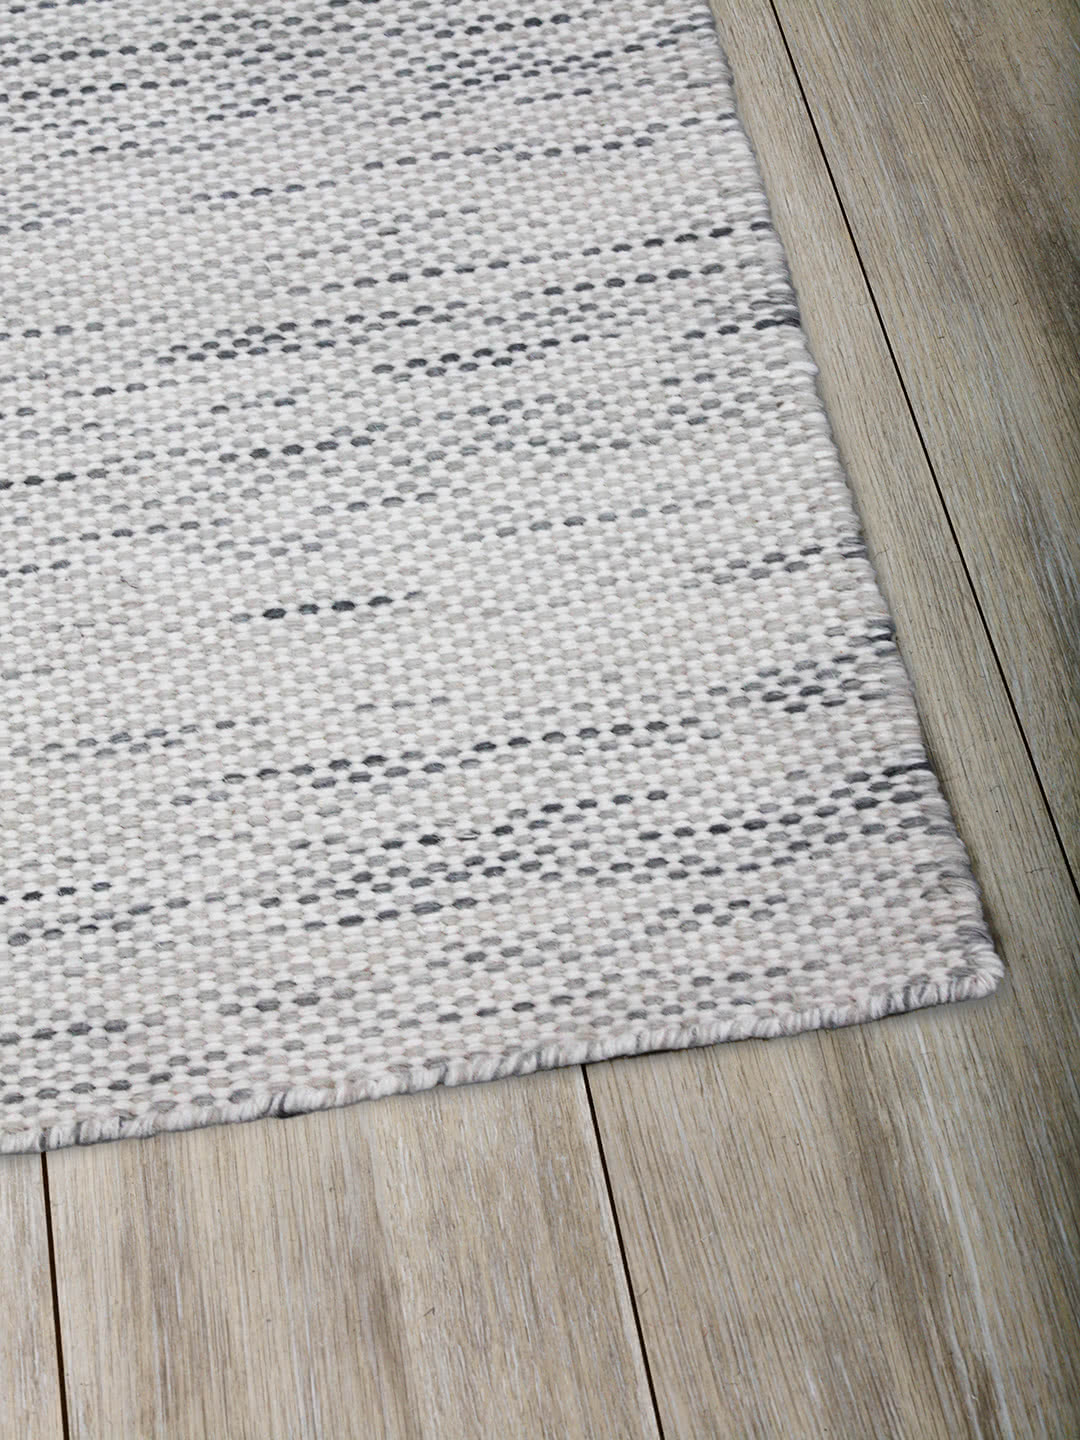 Silver Ivory pure wool rugs Perth